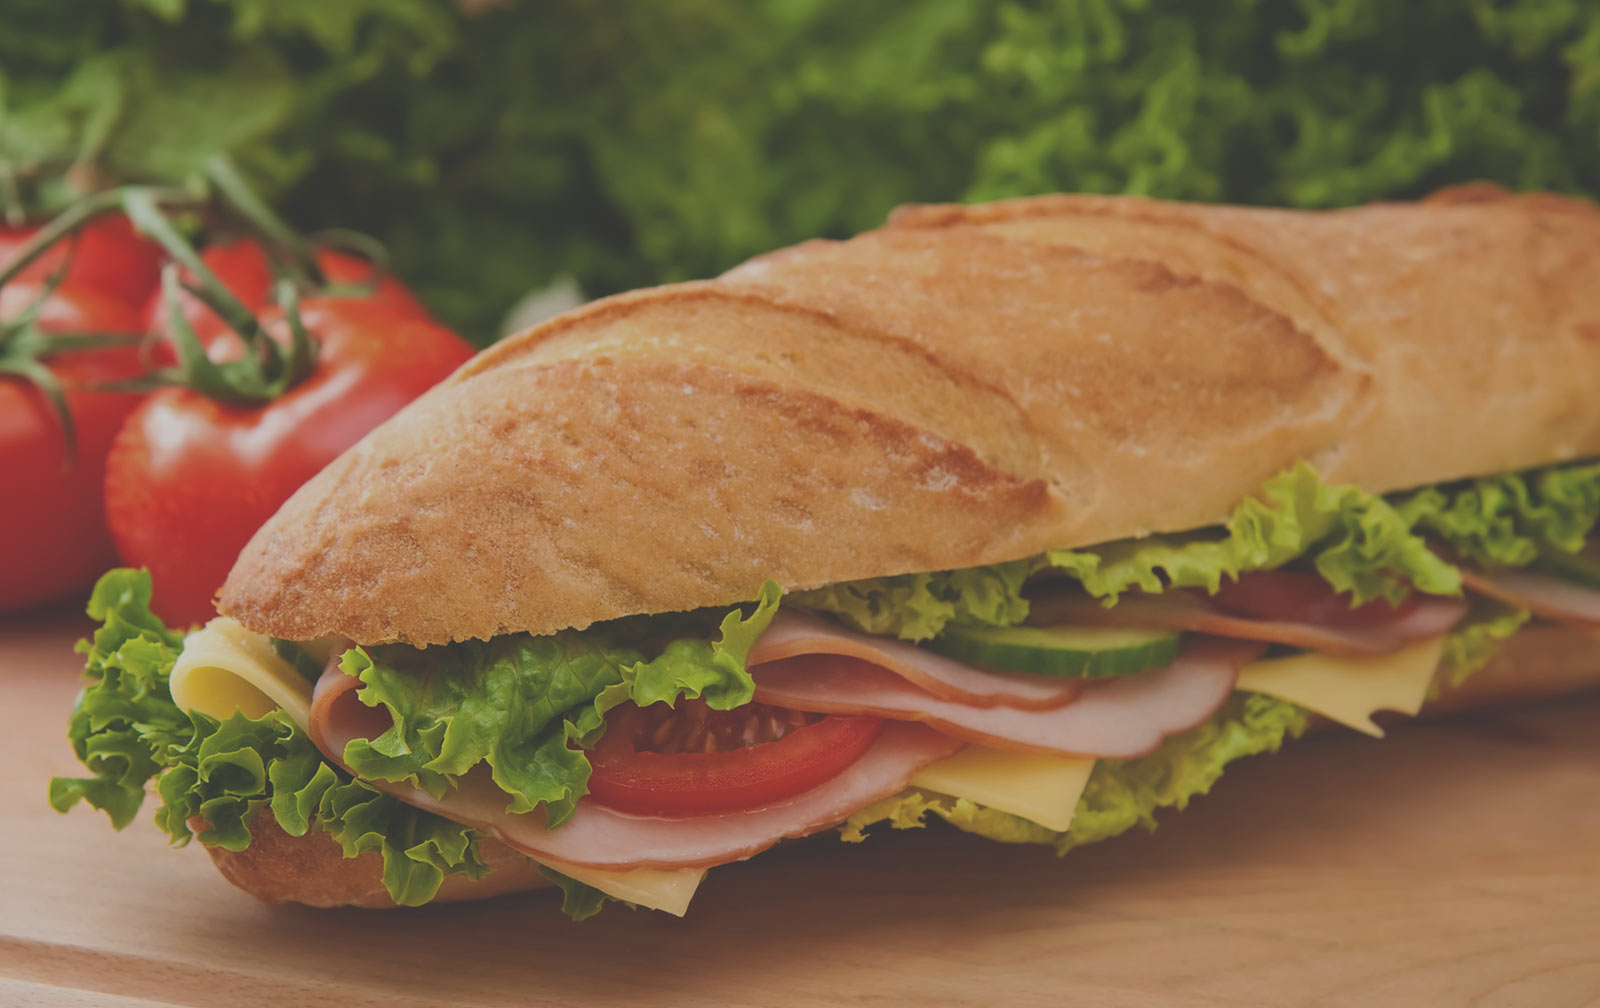 Sandwich Direct | Baguettes, Sandwiches, Snacks & Drinks